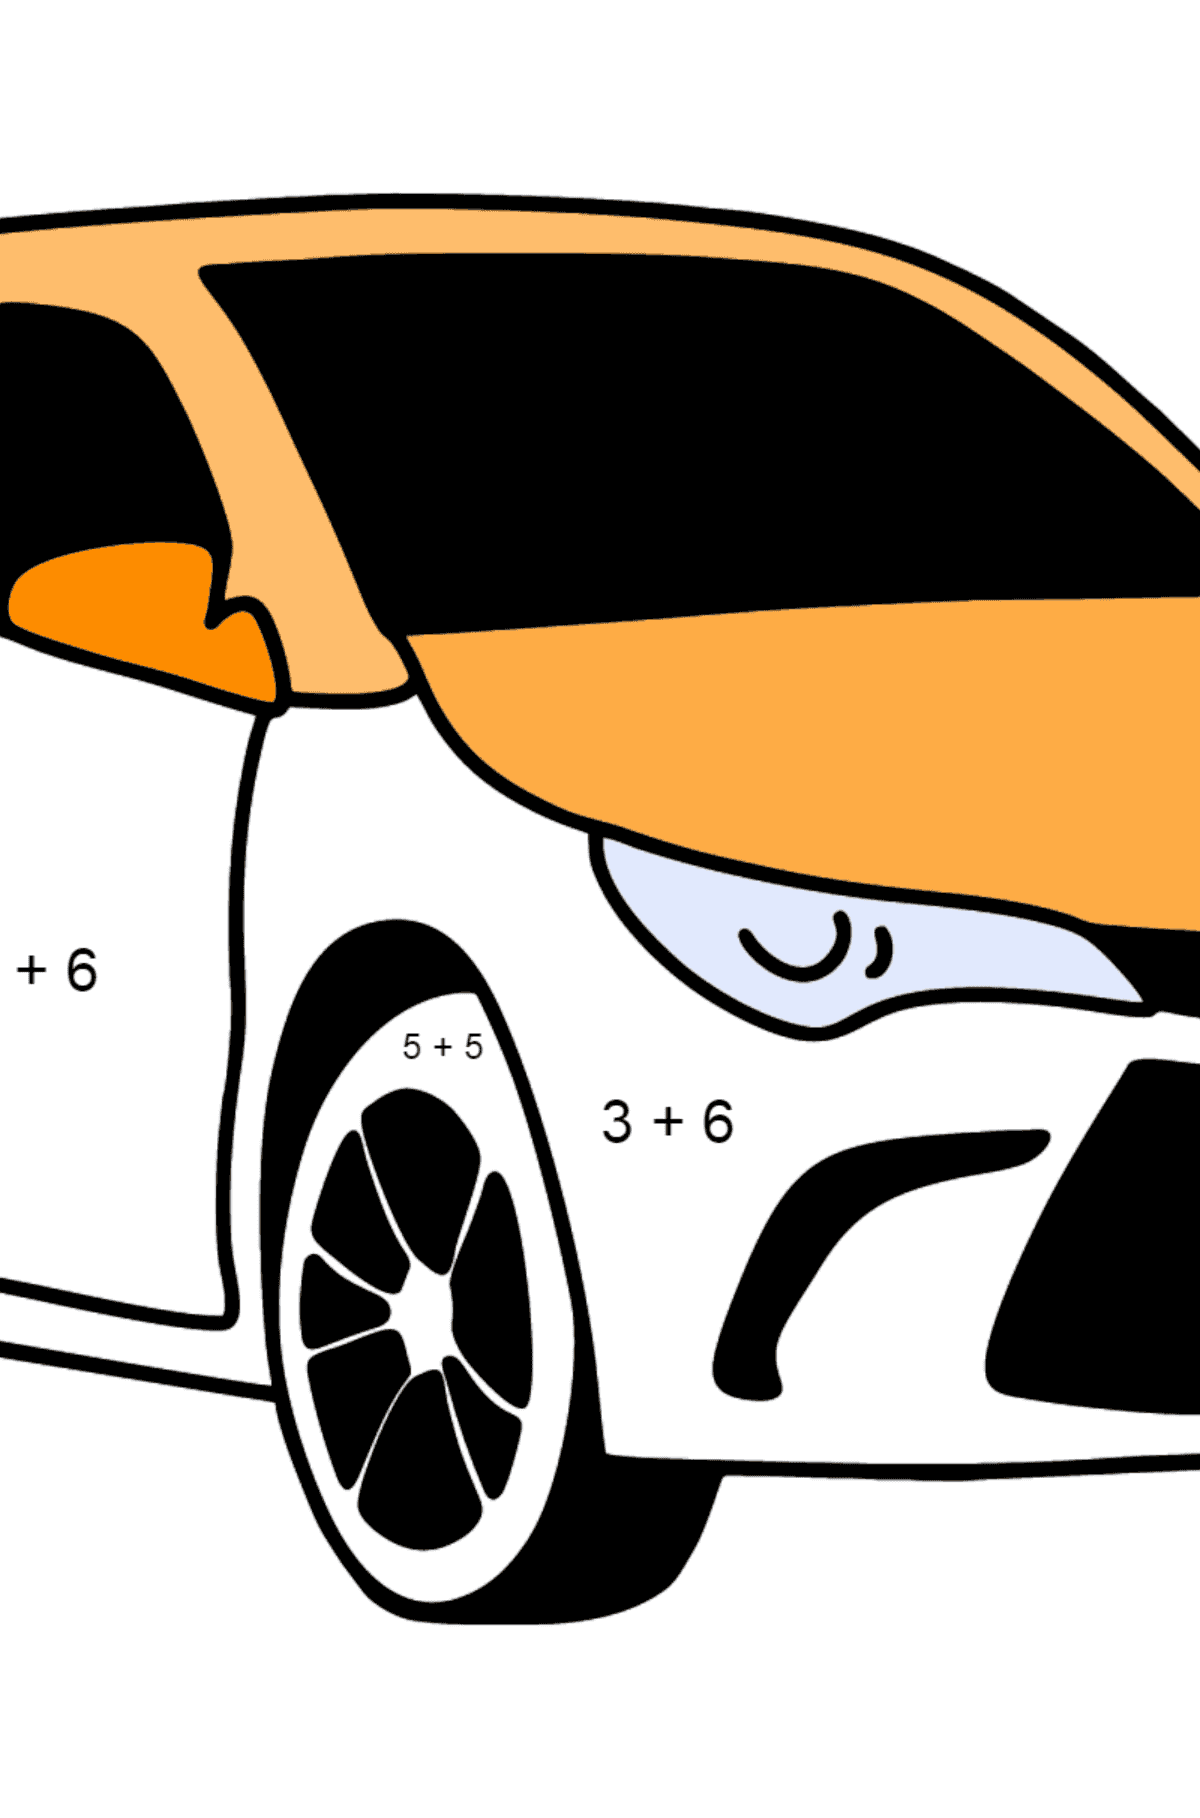 Toyota Camry coloring page - Math Coloring - Addition for Kids